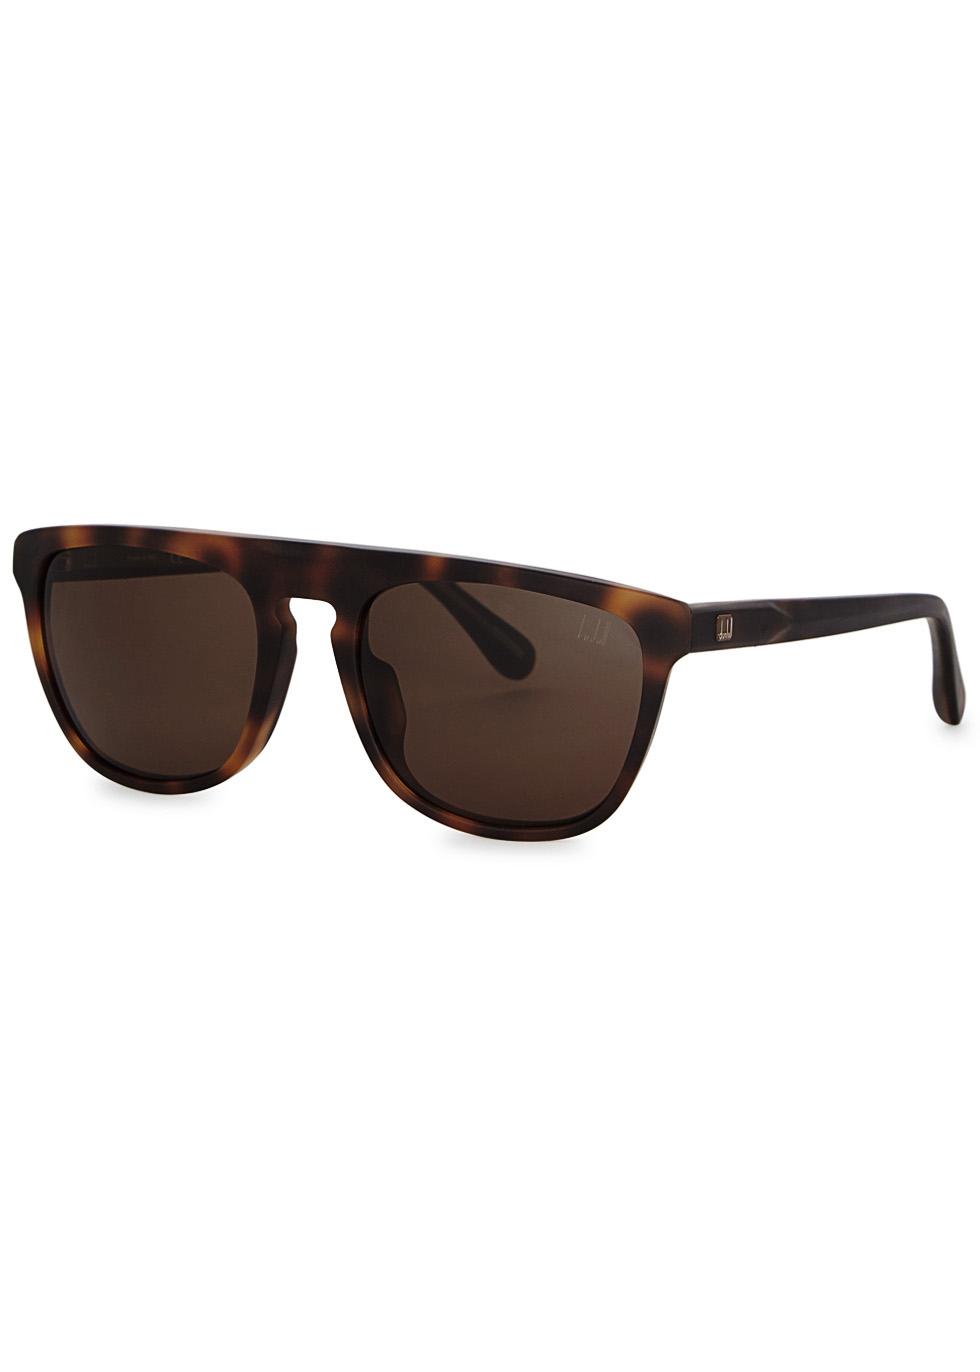 DUNHILL LONDON Tortoiseshell D-Frame Sunglasses in Havana